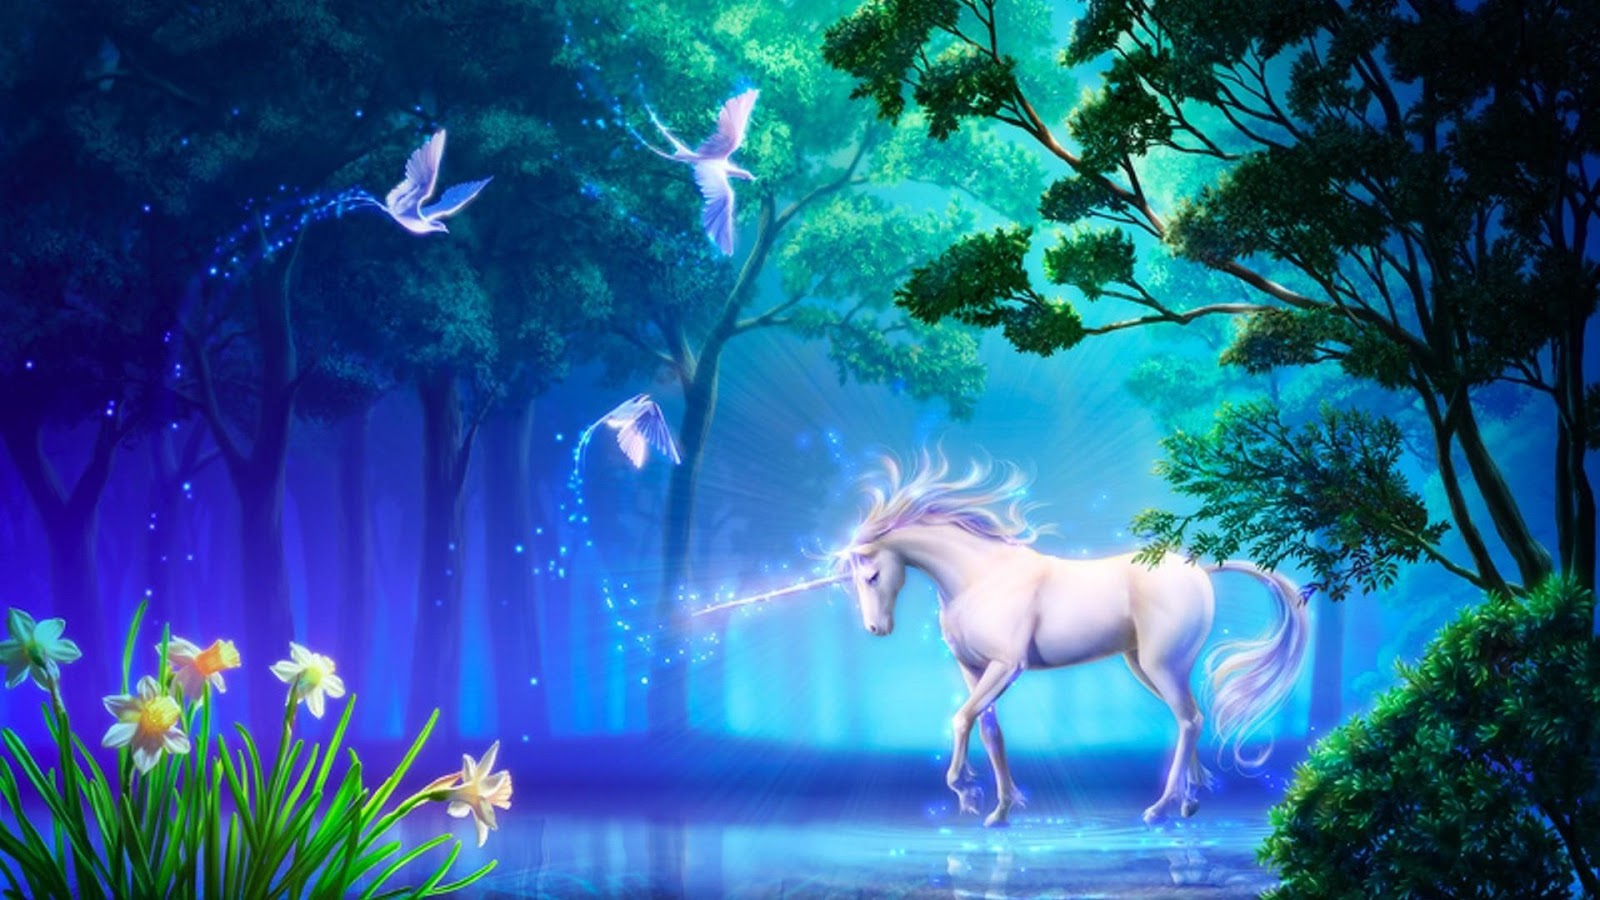 Hd wallpaper unicorn - Unicorn Wallpaper Hd Screenshot